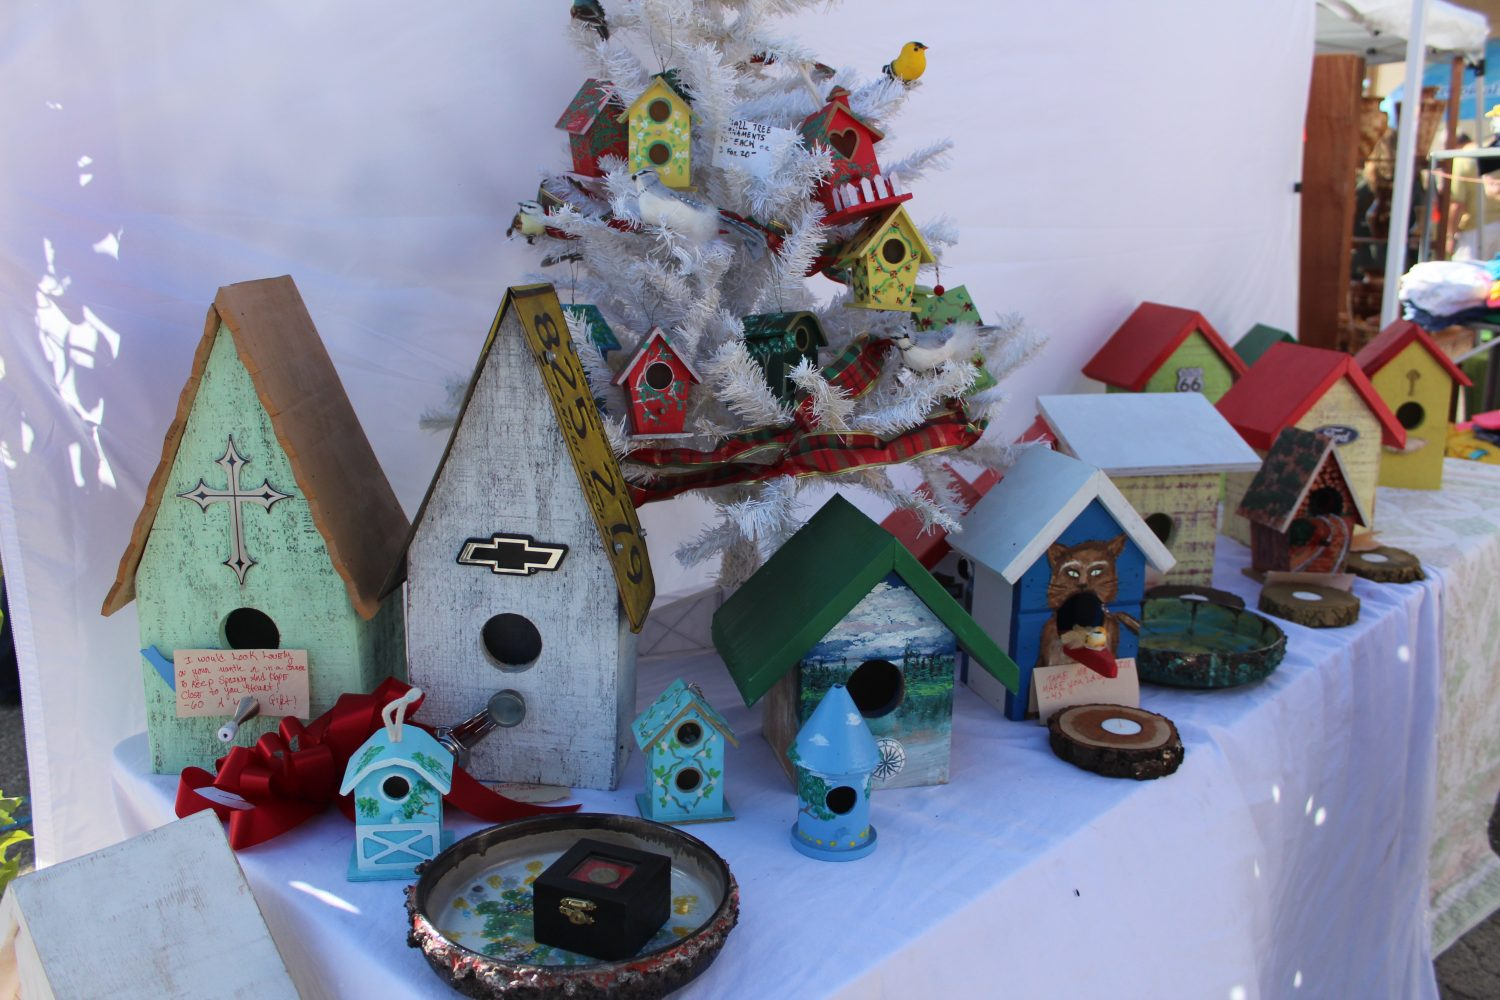 Birdhouses hand-painted by Raquelle Crusado. Crusade picked up the hobby for therapeutic reasons after a traumatic injury. (Photo by Sophie Smadbeck/WUFT News)